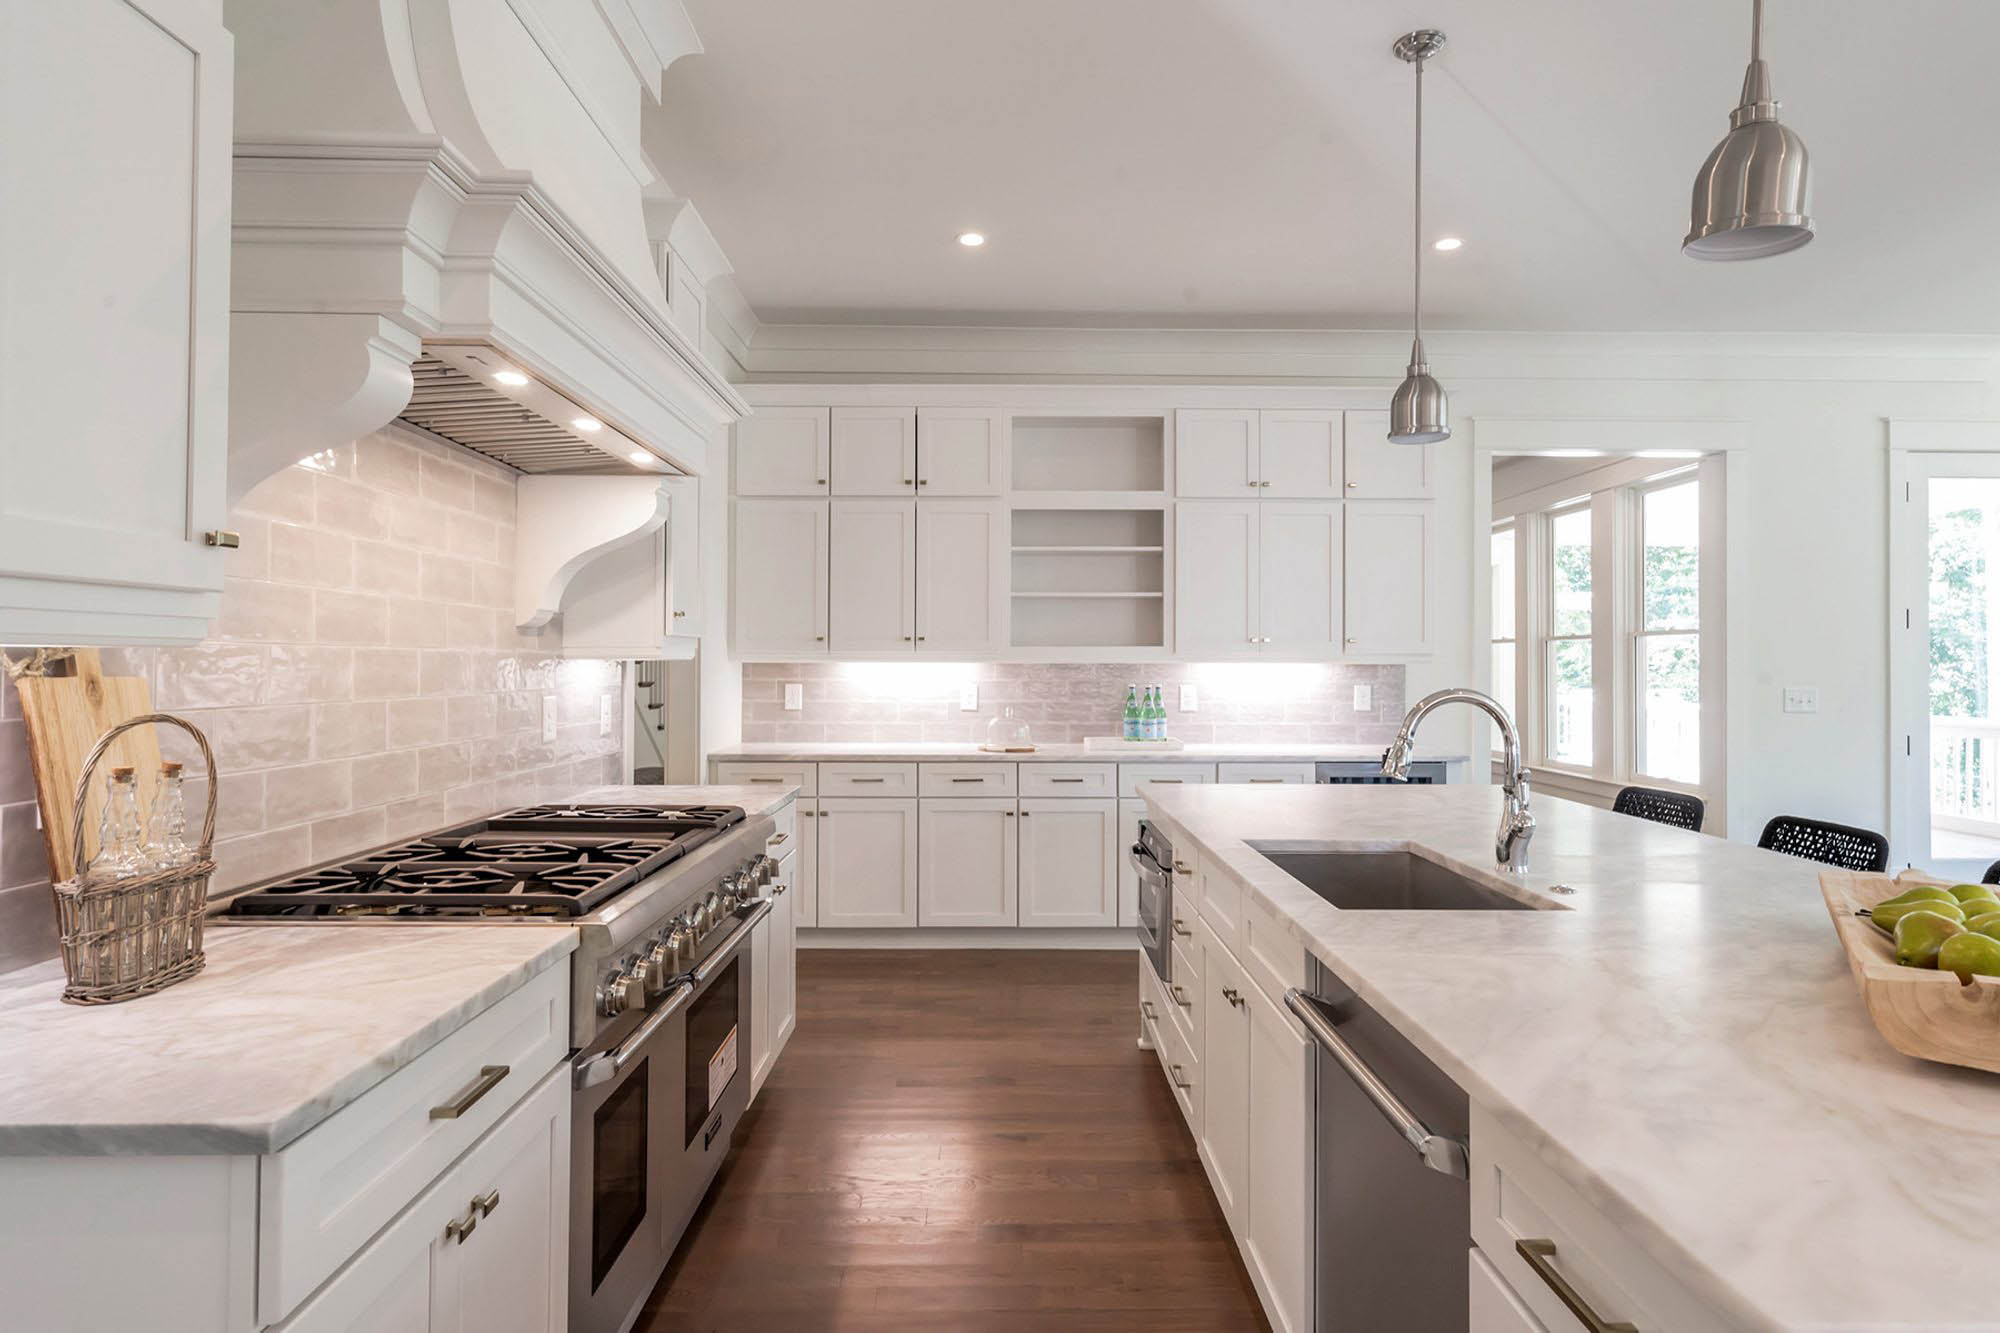 Marble quartz kitchen countertops with white cabinets and hardwood floors. Gray tile backsplash. quartz vs granite.